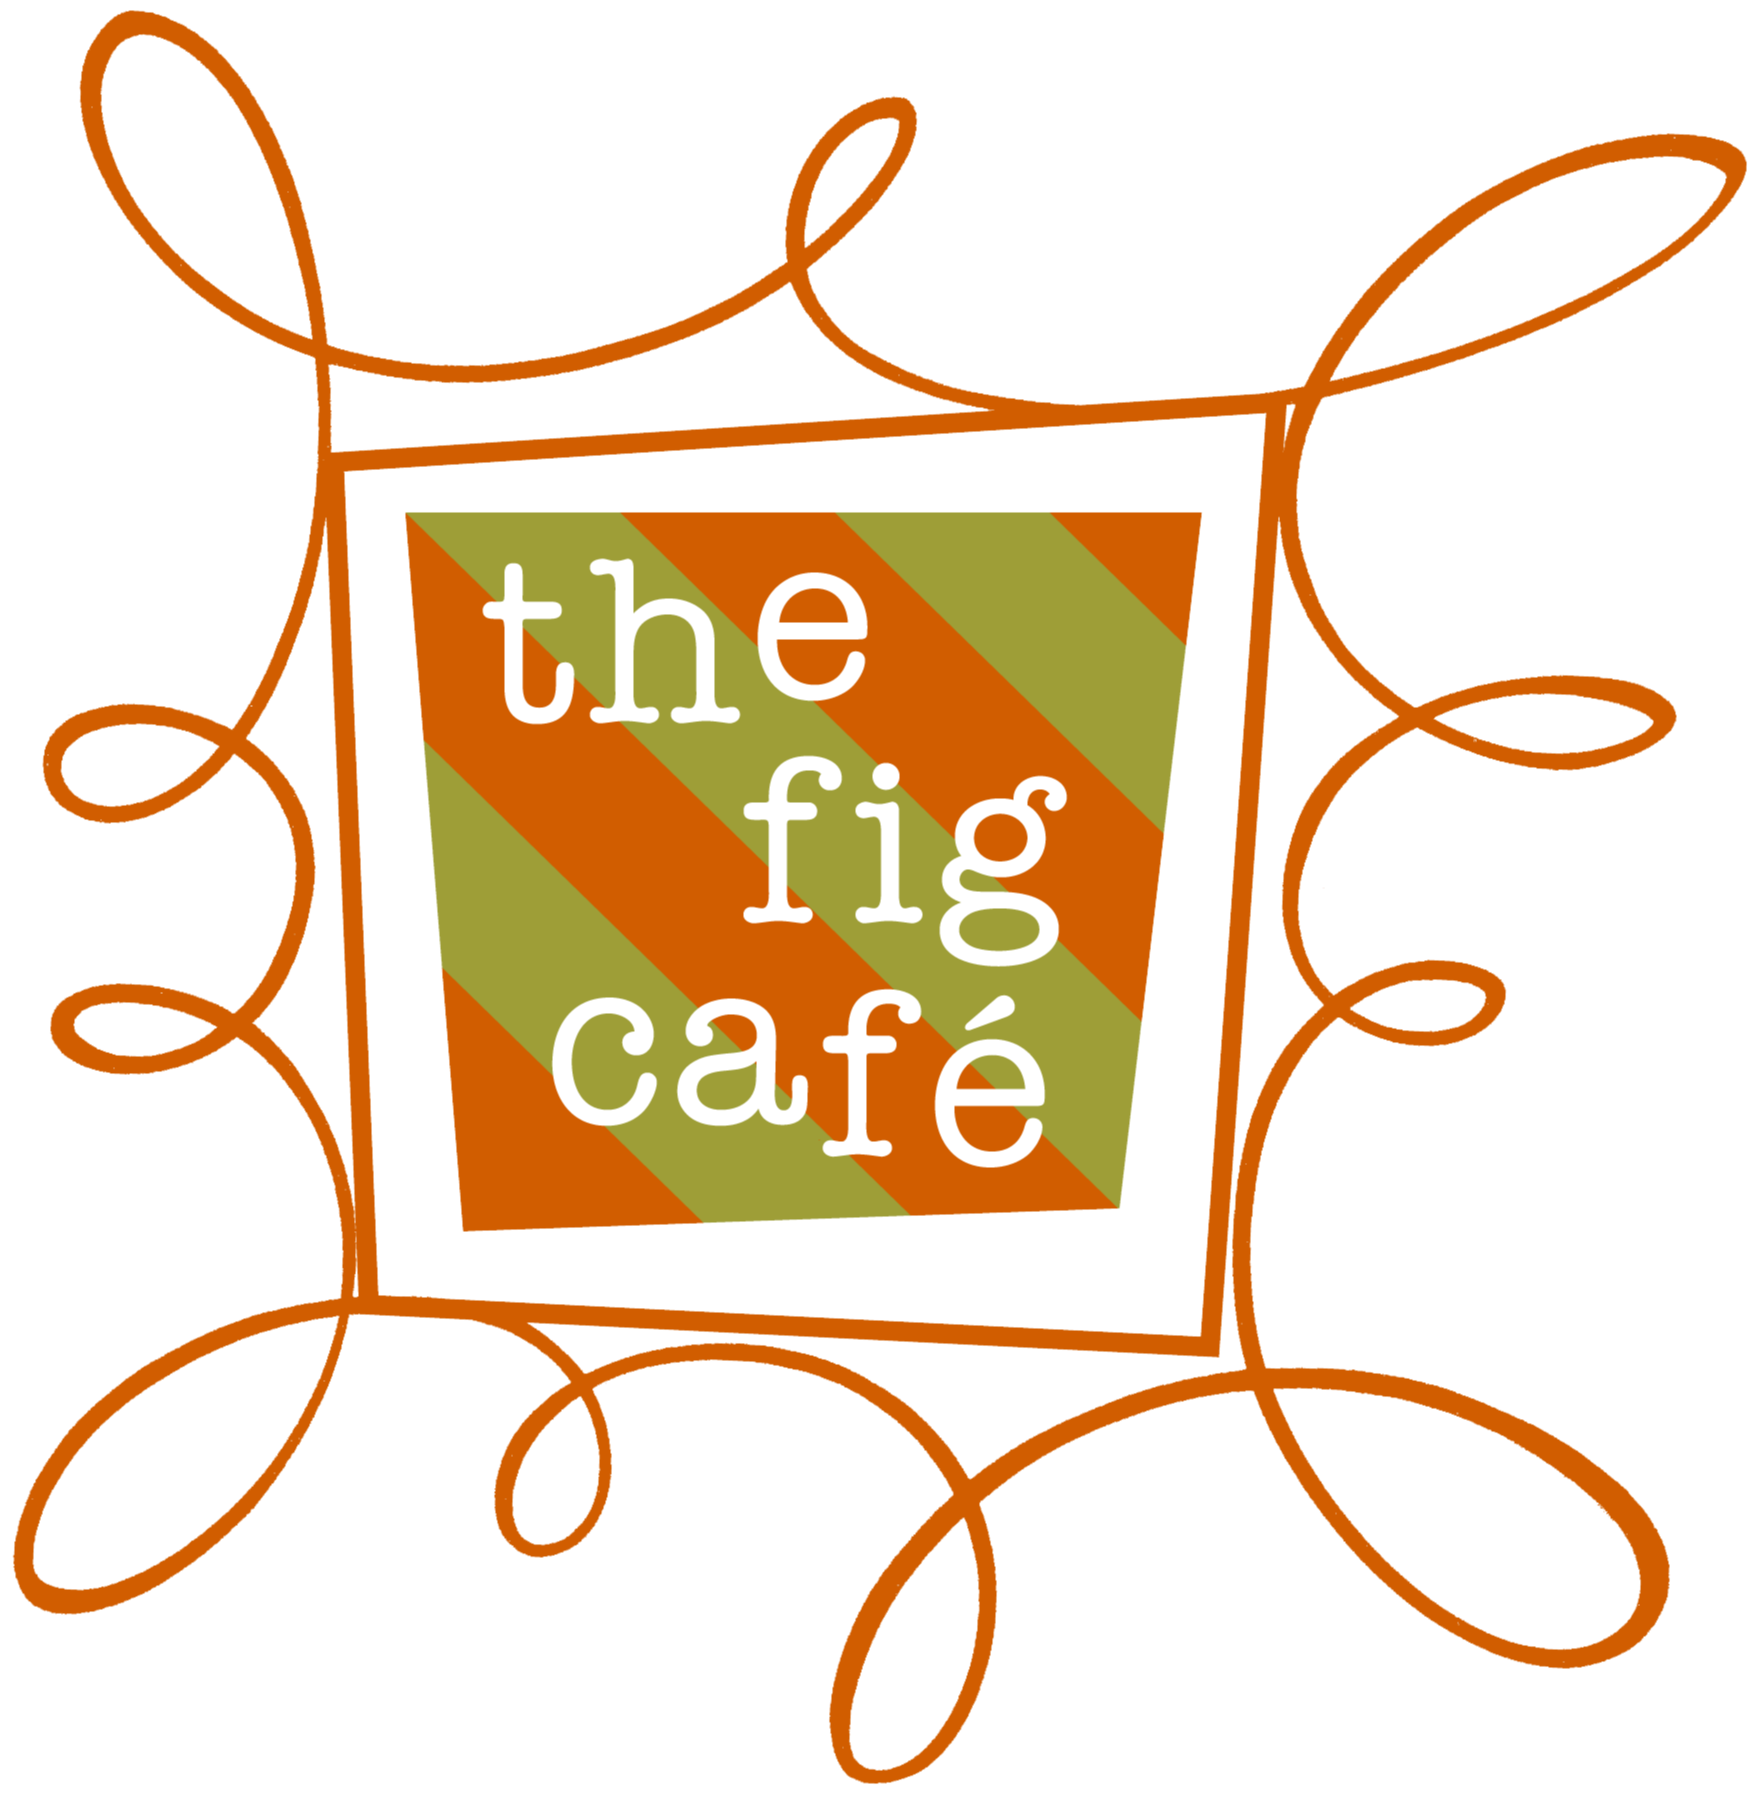 the fig cafe Home